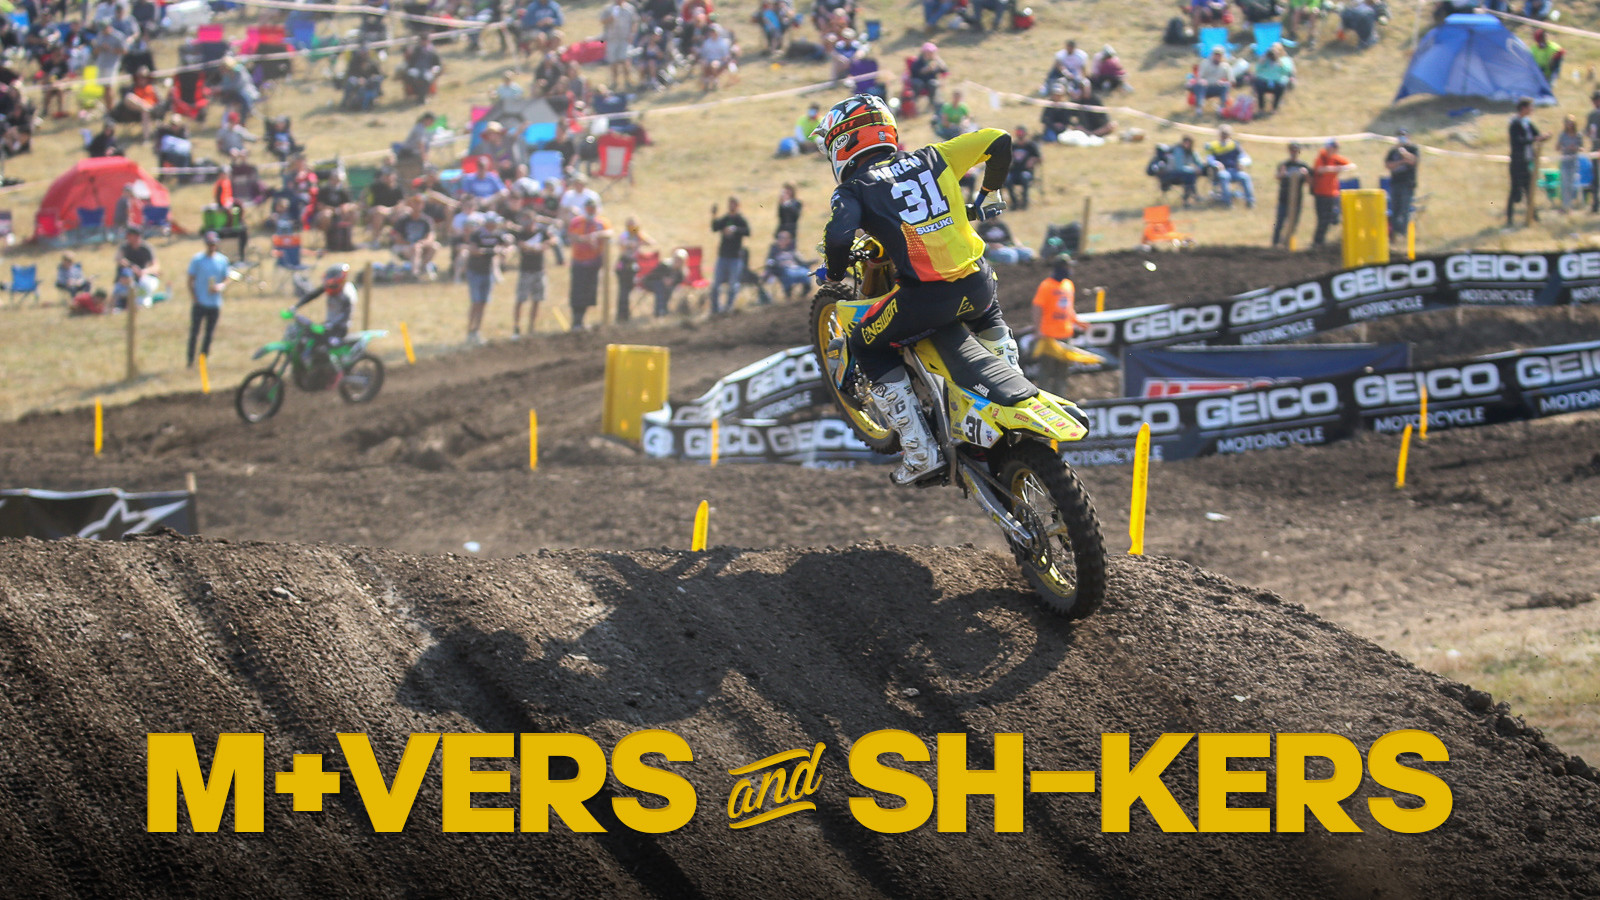 Movers & Shakers from Thunder Valley